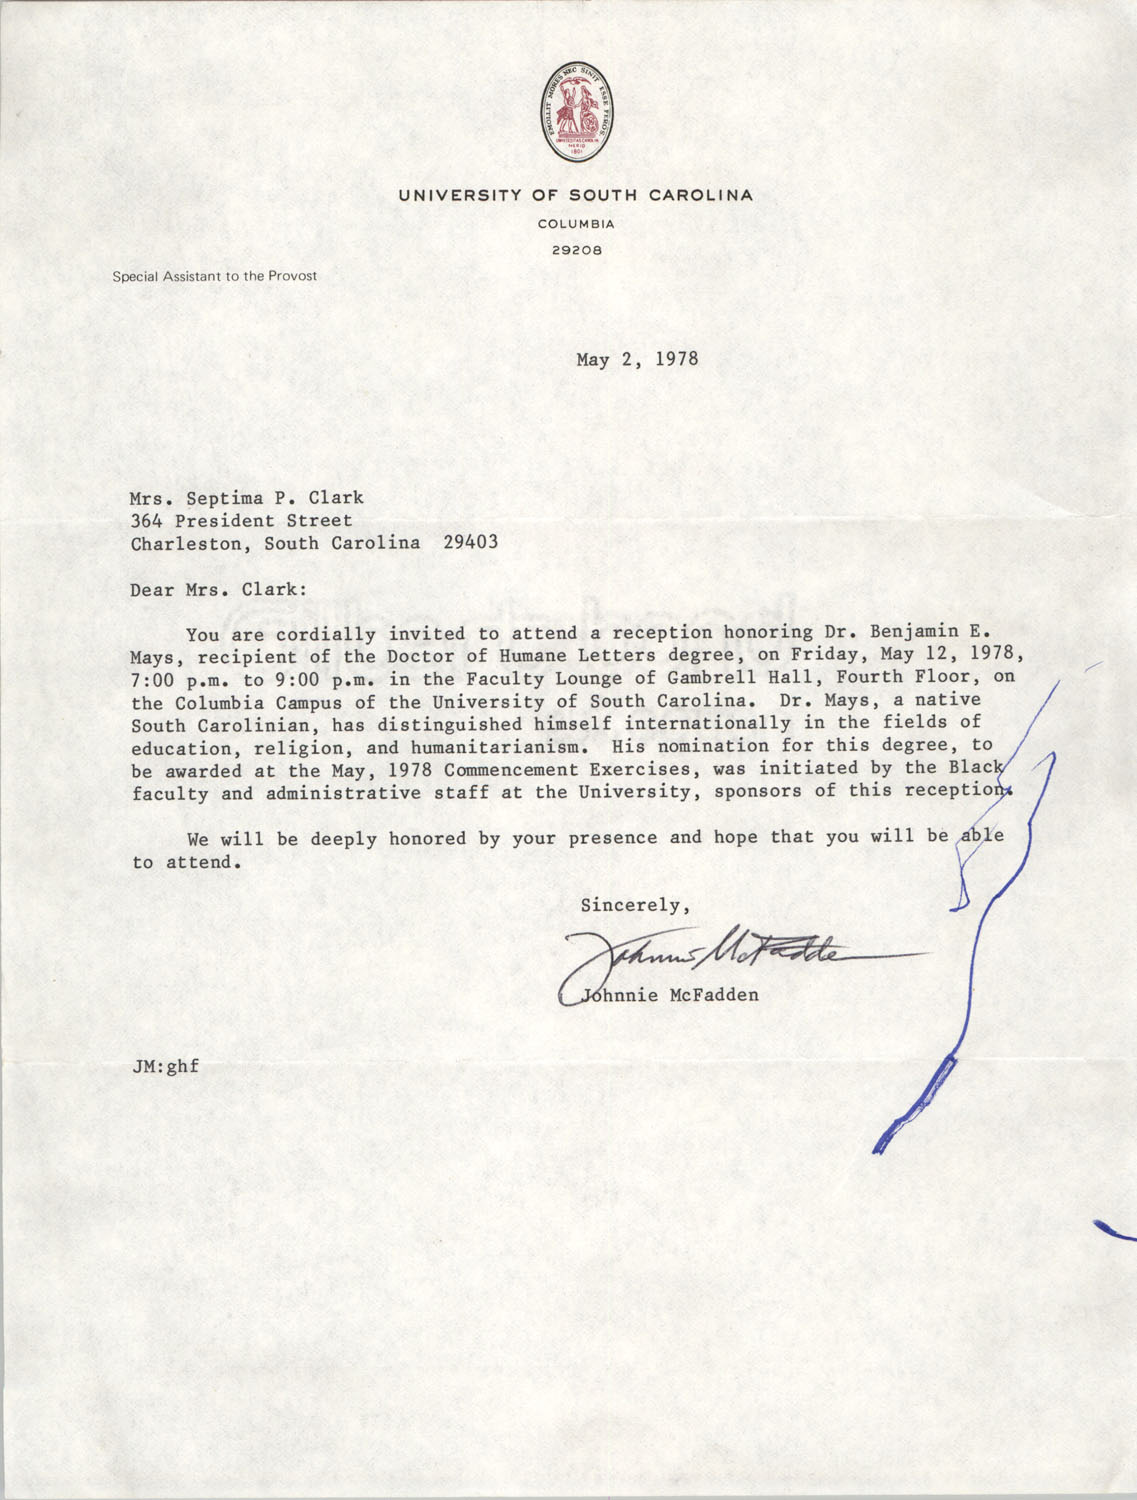 Letter from Johnnie McFadden to Septima P. Clark, May 2, 1978